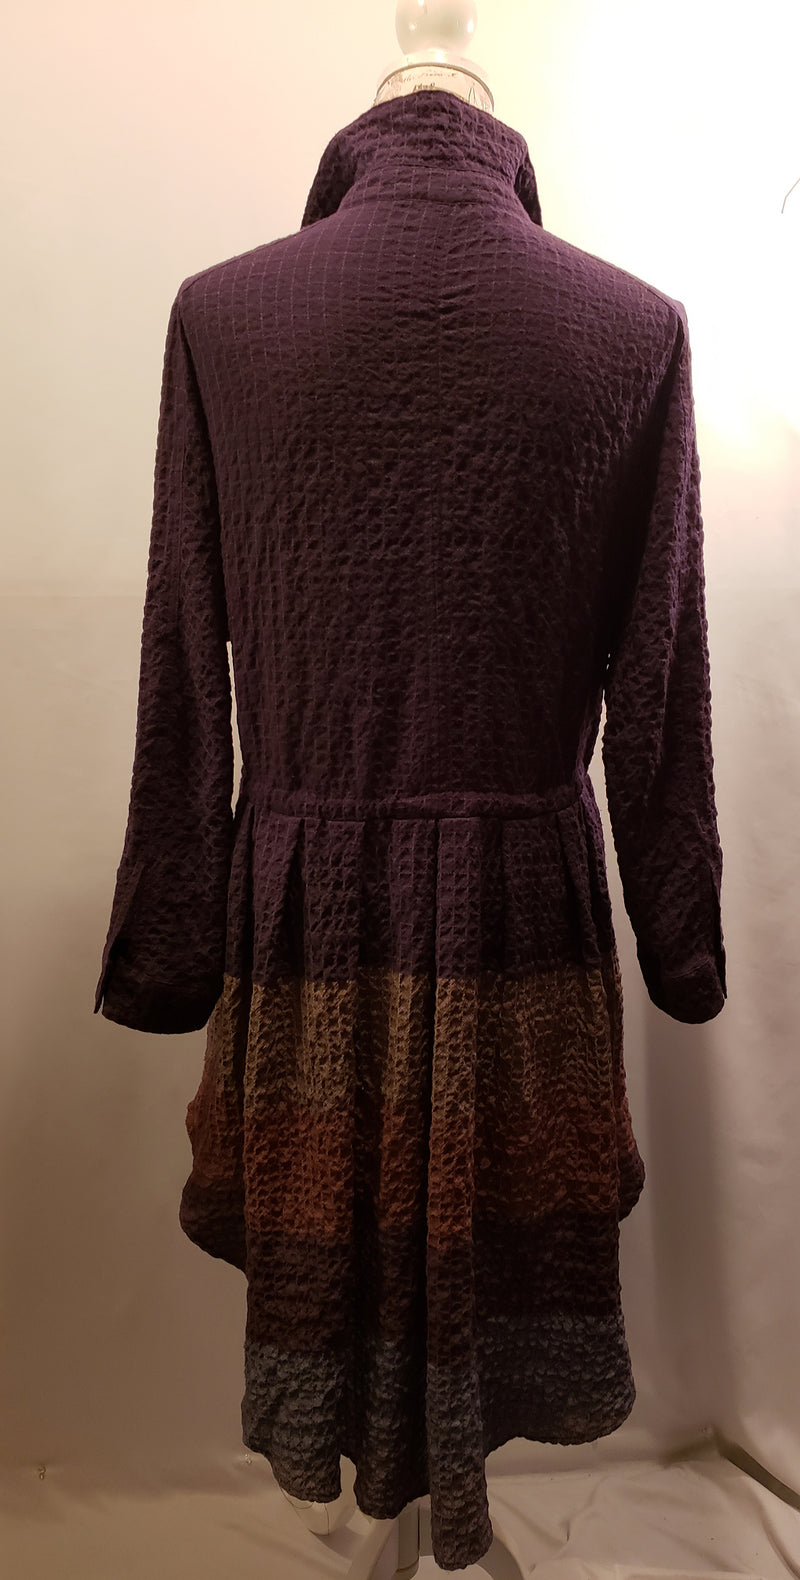 Free People Multi-Color Dress Size Small